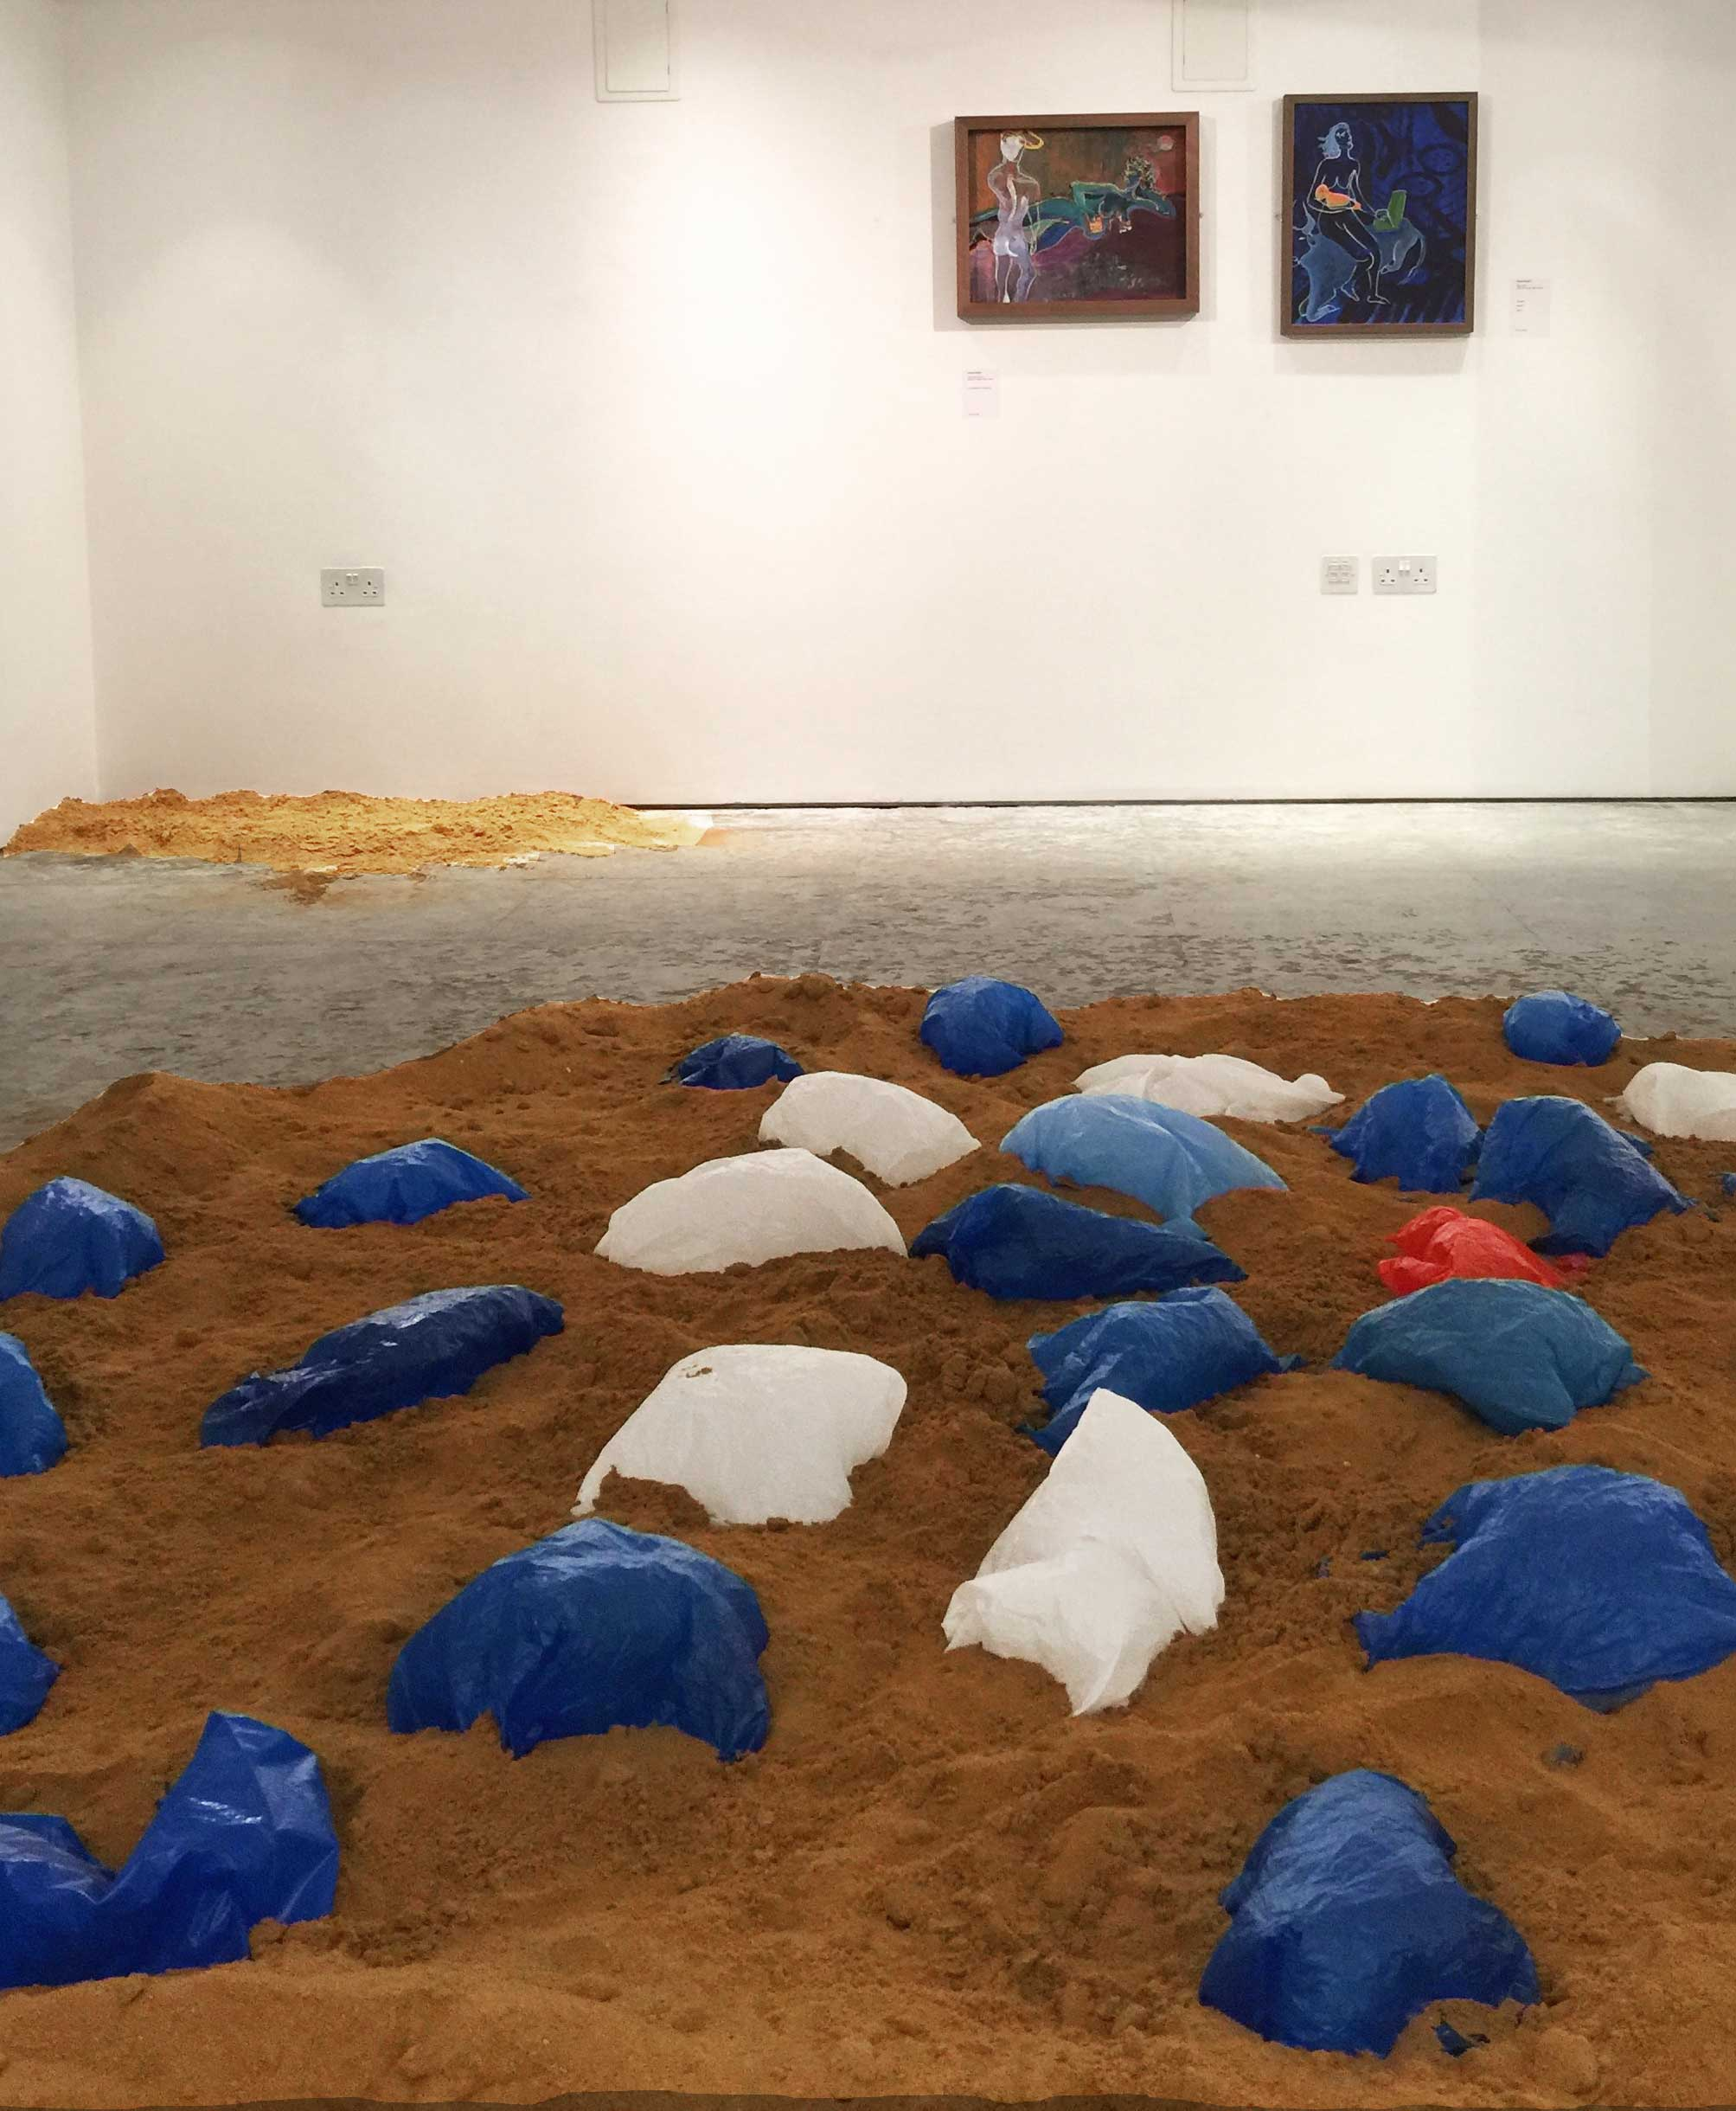 'Foreign Bodies' ©Souheil Sleiman (front) address environmental problems as well as the ongoing refugee crisis. The plastic bags seemingly abandoned at sea come alive by inflating and deflating throughout the day, in consequence with changes in ambient temperature.